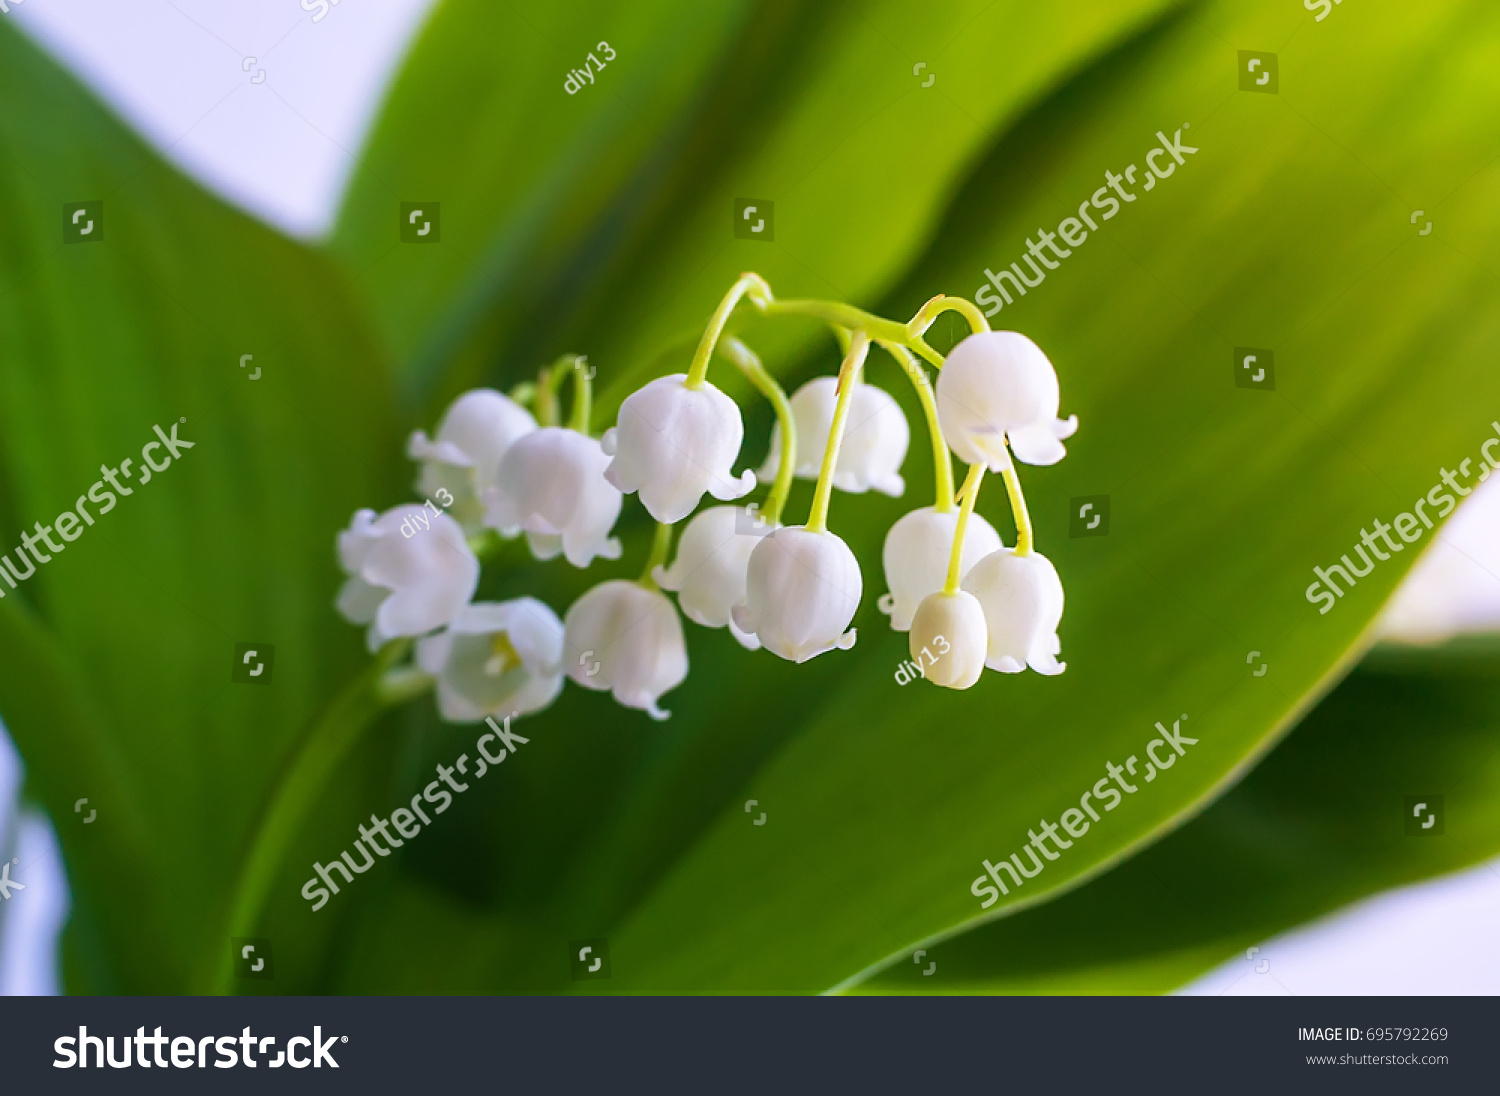 Blossoming lily valley lilyofthevalley convallaria majalis spring blossoming lily of the valley lily of the valley convallaria majalis izmirmasajfo